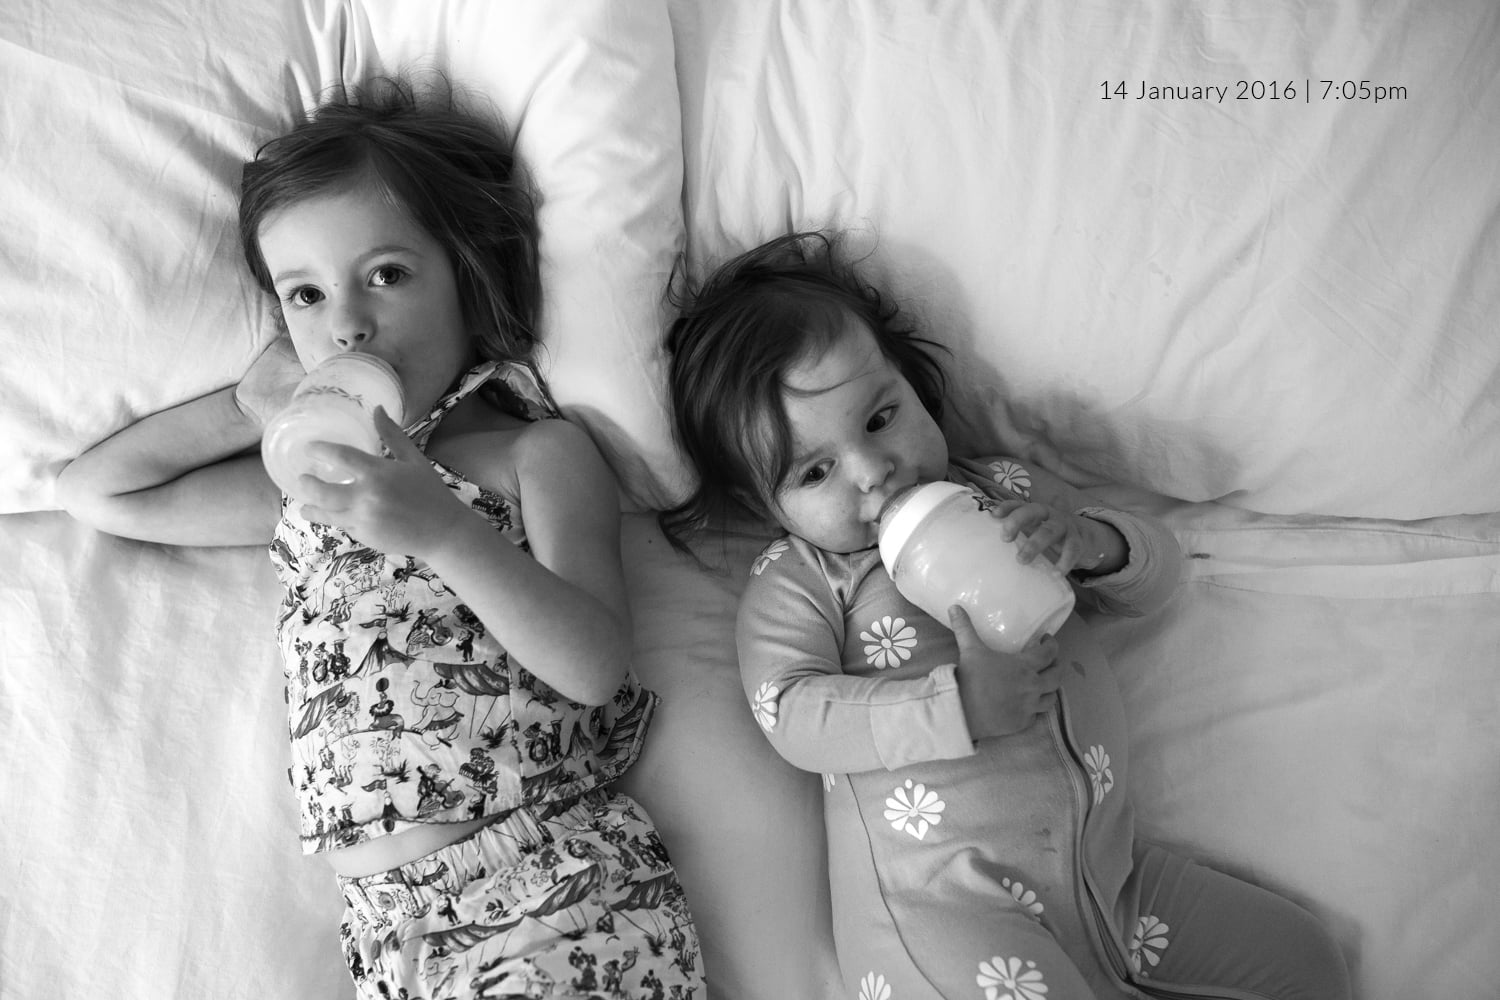 family-photography-photo-a-day-challenge-day-14.jpg